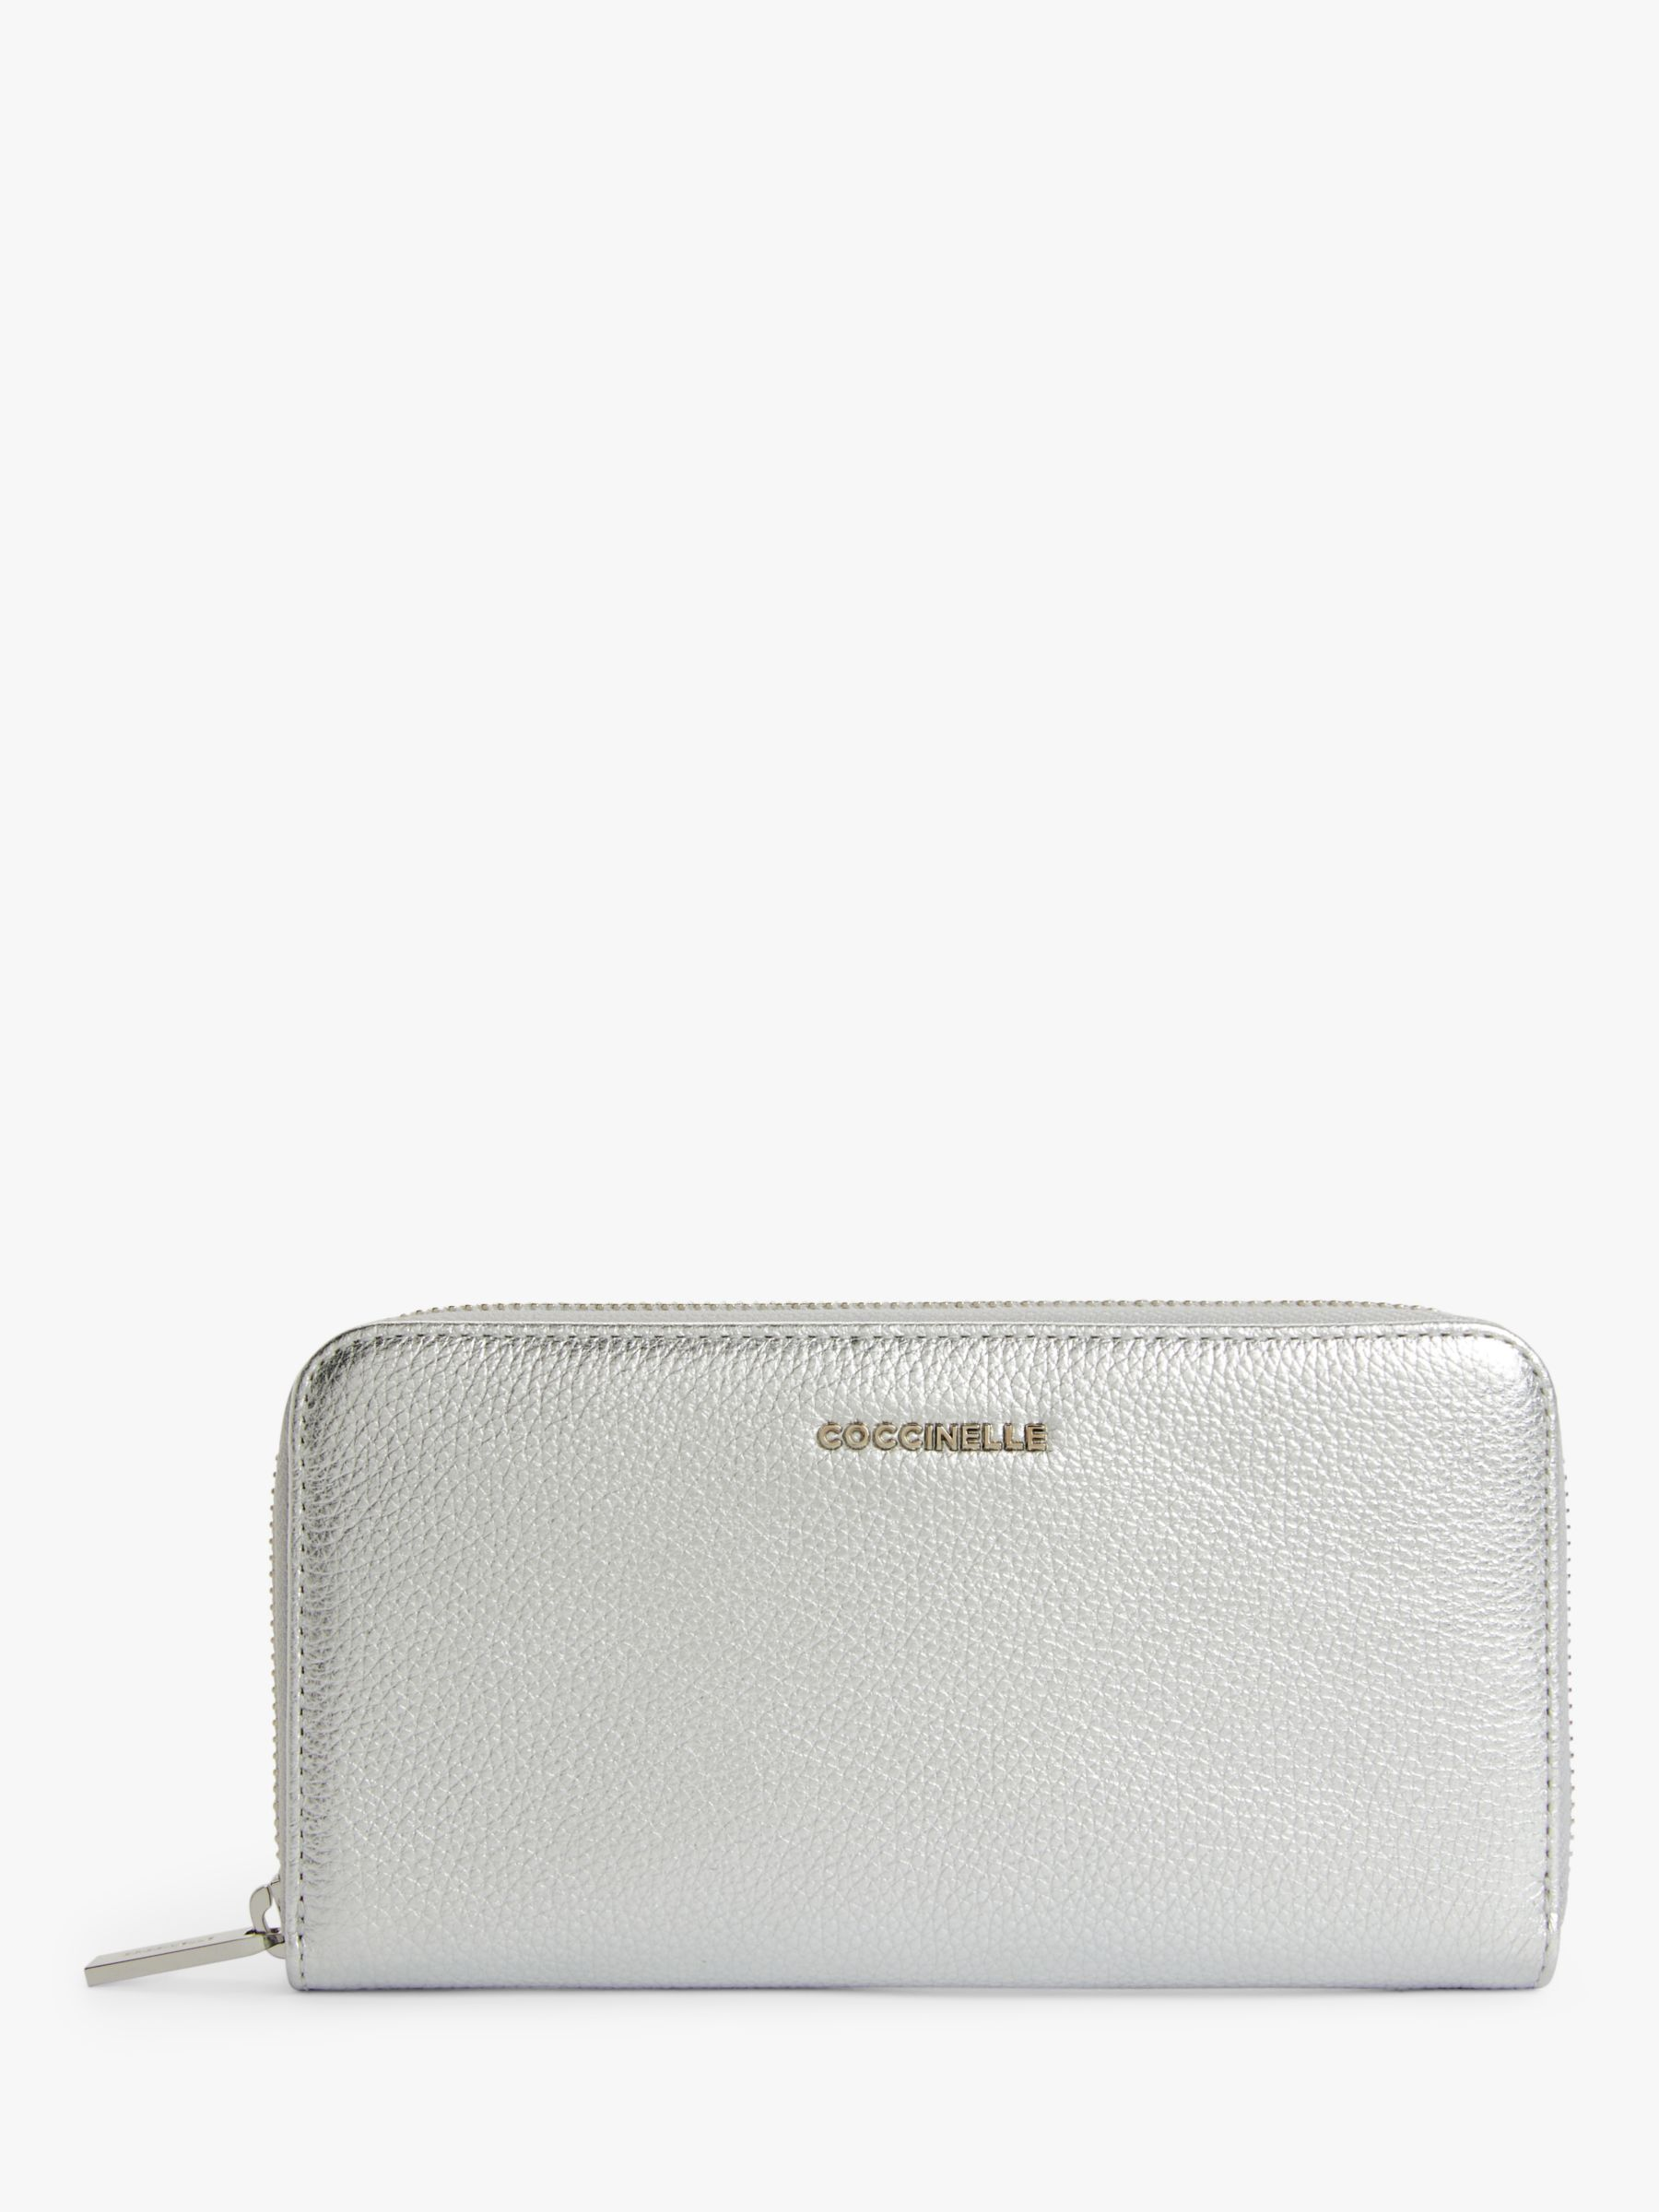 Coccinelle Coccinelle Metallic Zip Around Soft Leather Purse